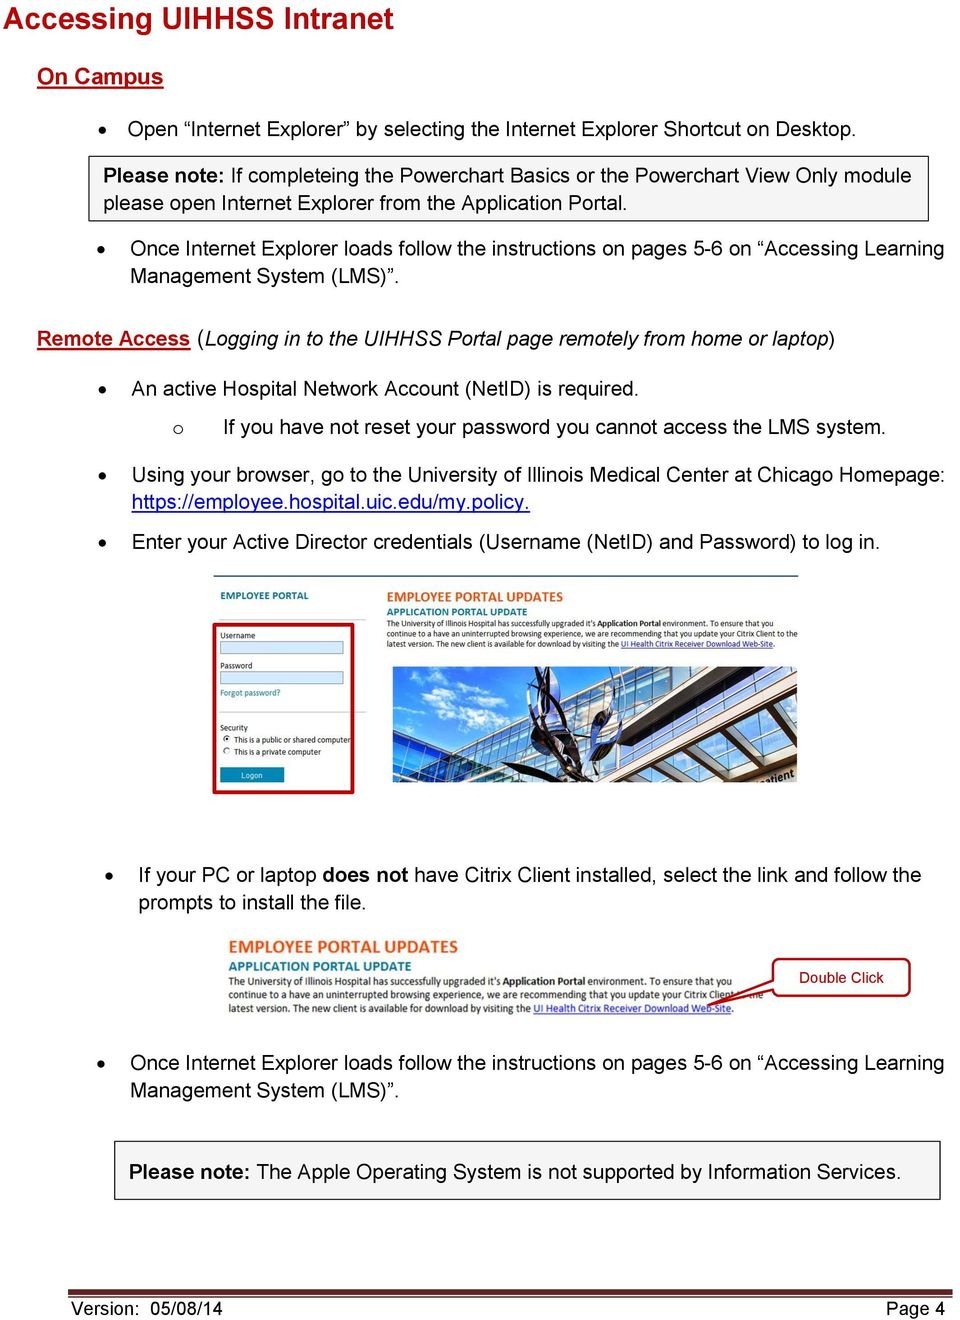 Instructions for Cerner E-Learning and Access - PDF